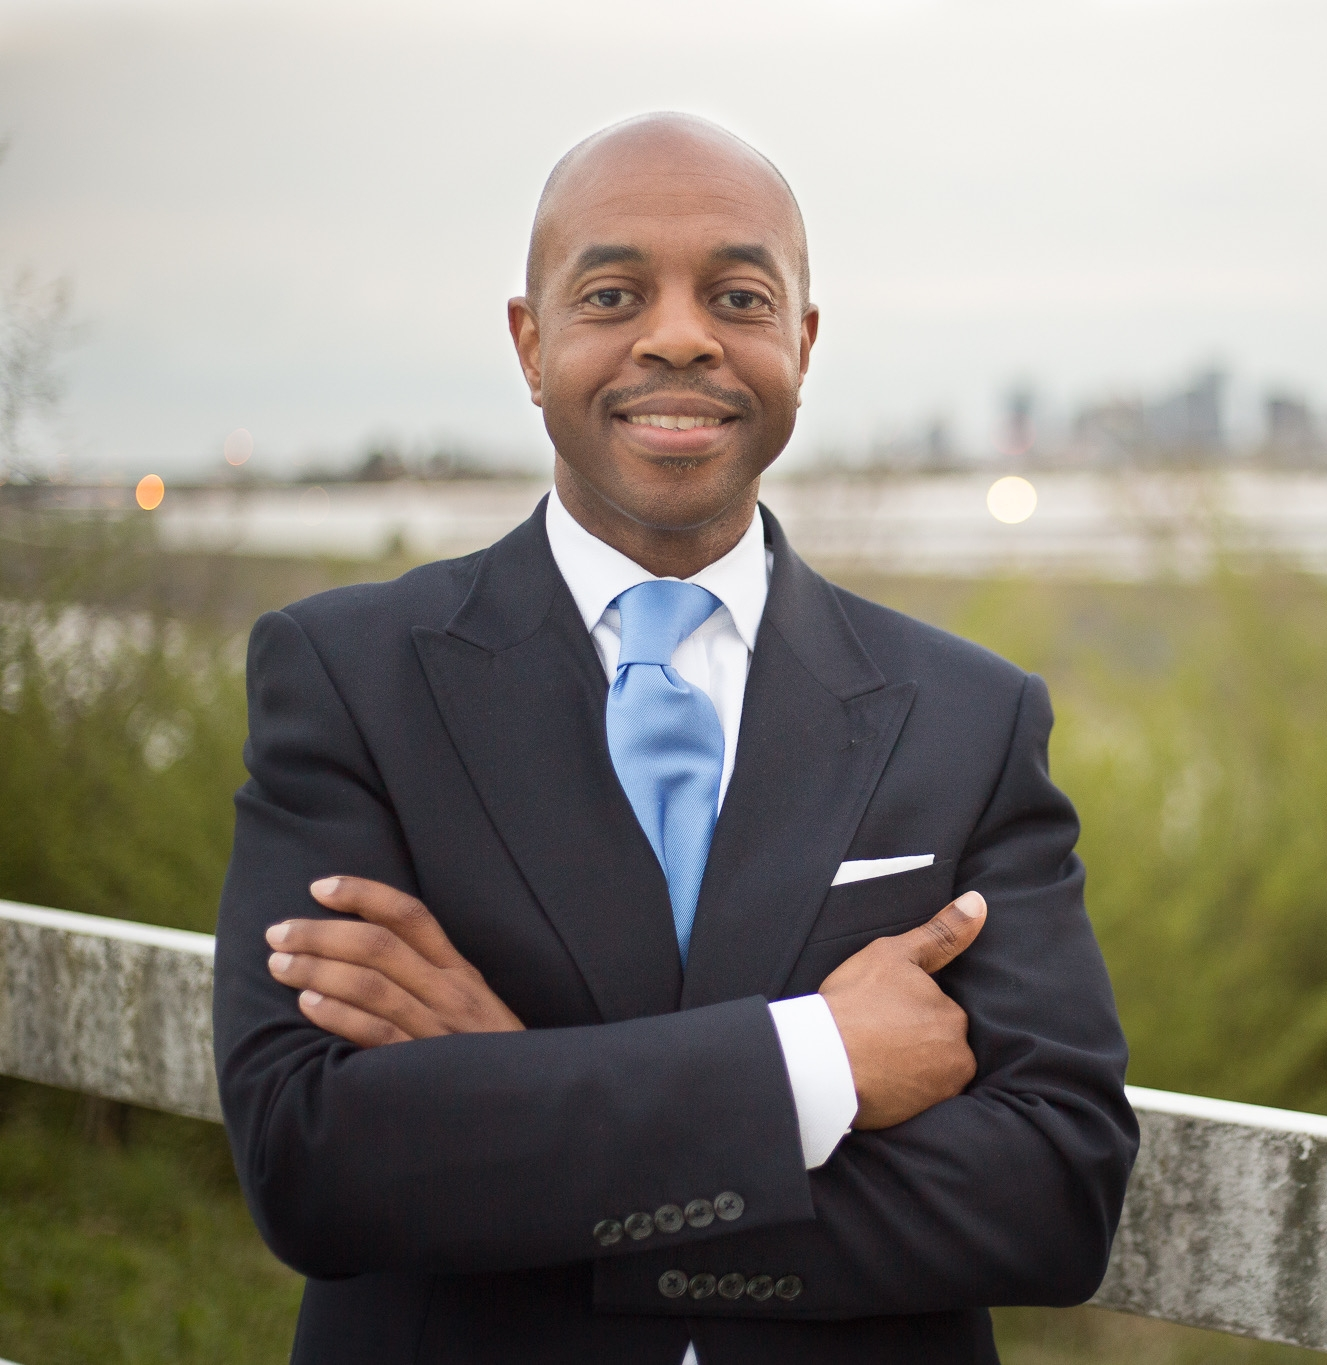 Guest: - State Rep. Harold Love (D) - District 58, and Nashville Mayoral Candidate in 2018We discussed his experience as a legislator and his